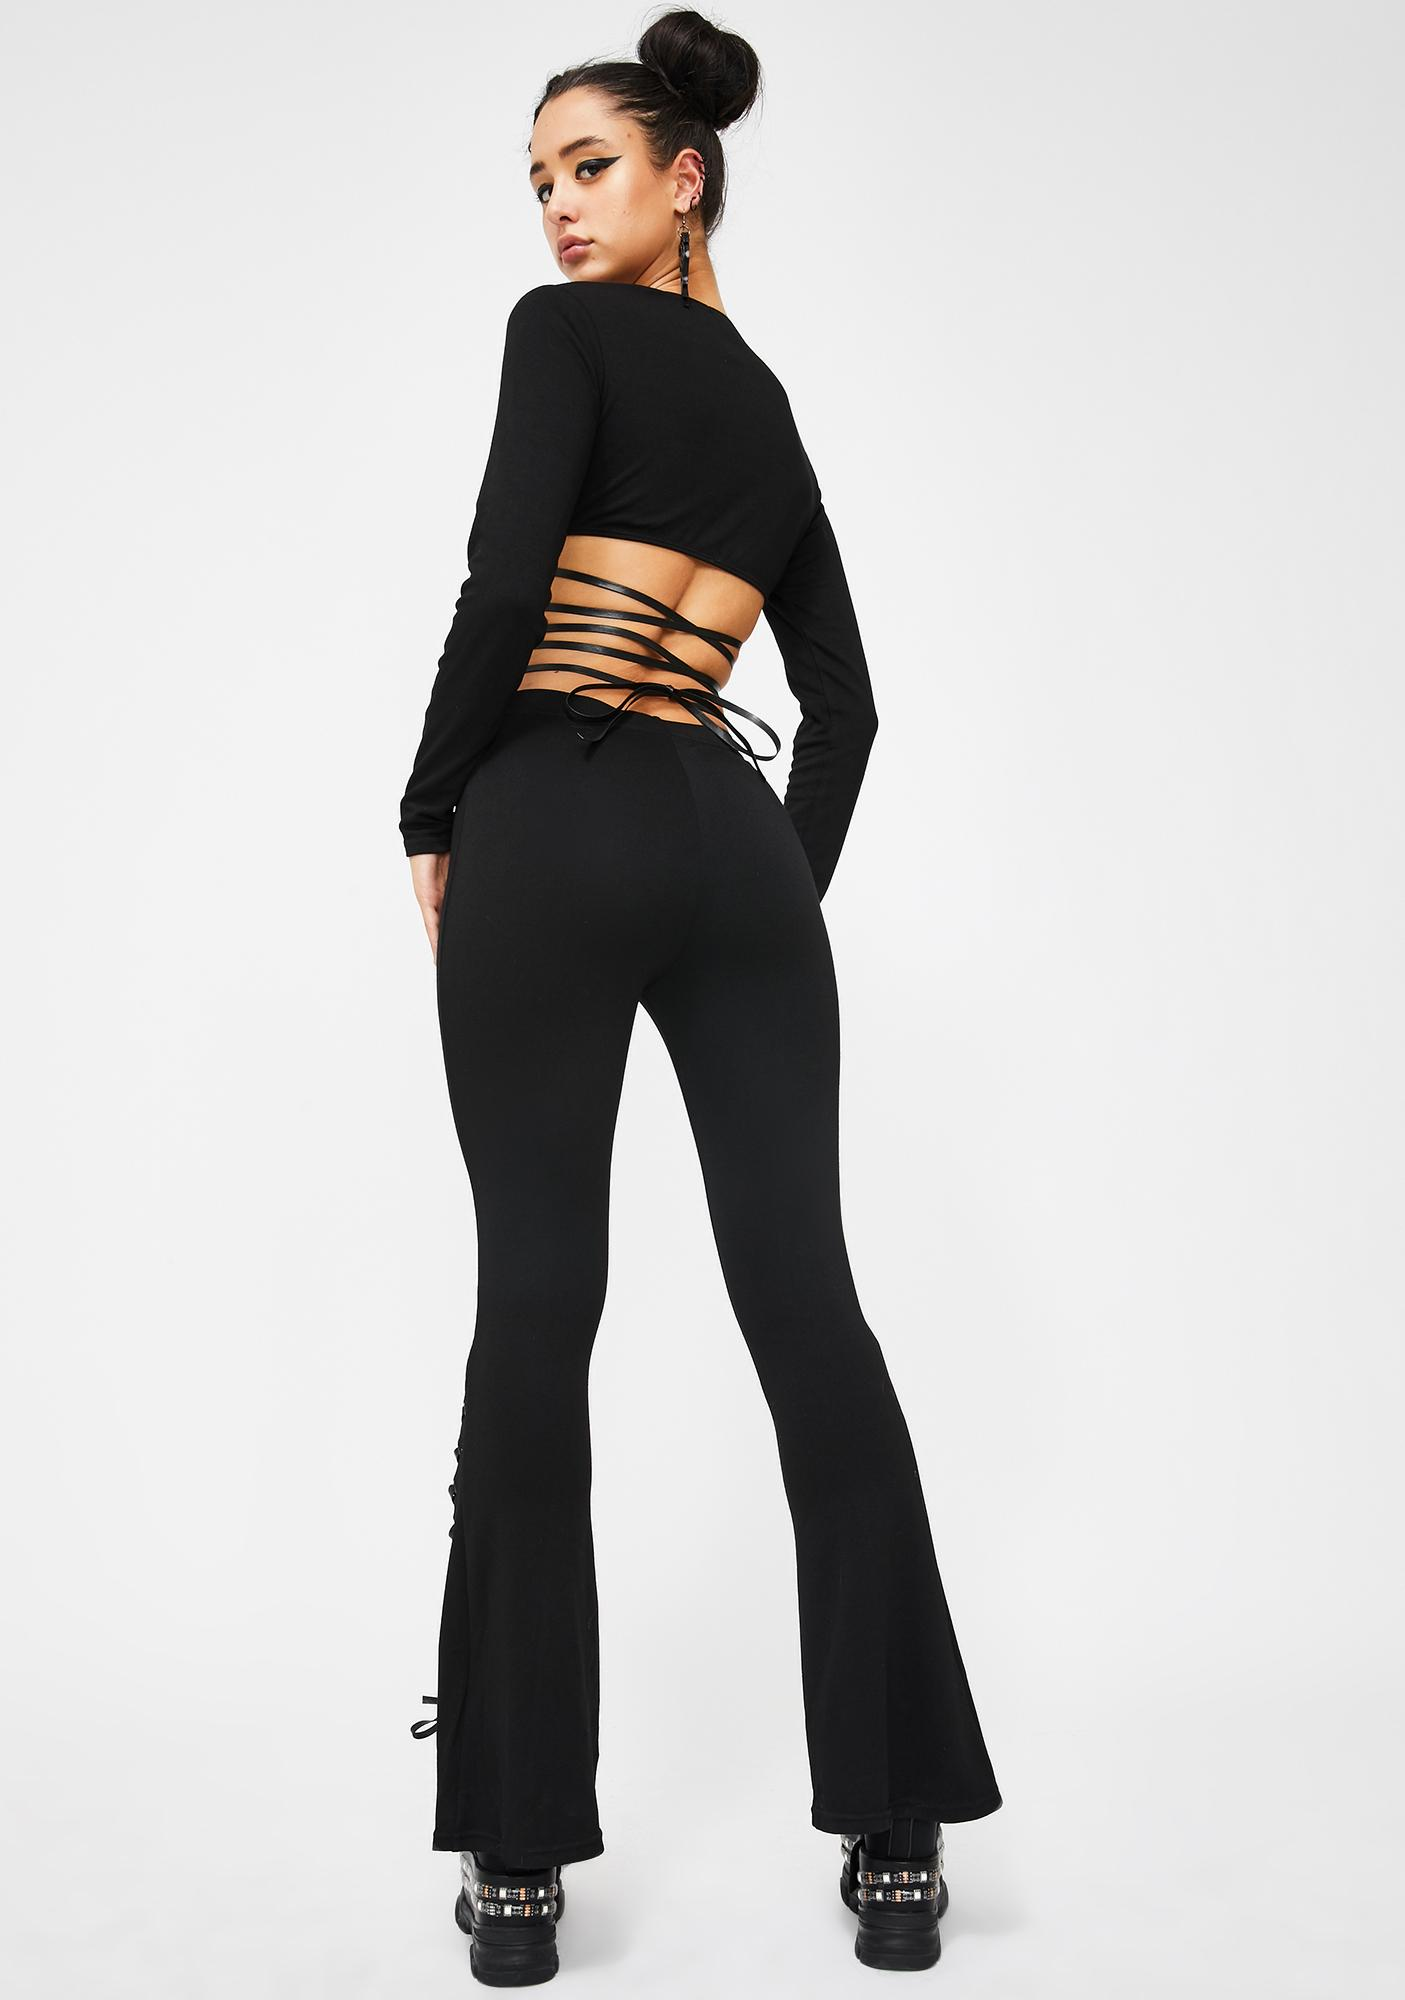 Club Exx Cyberpunk Riot Lace-Up Flares